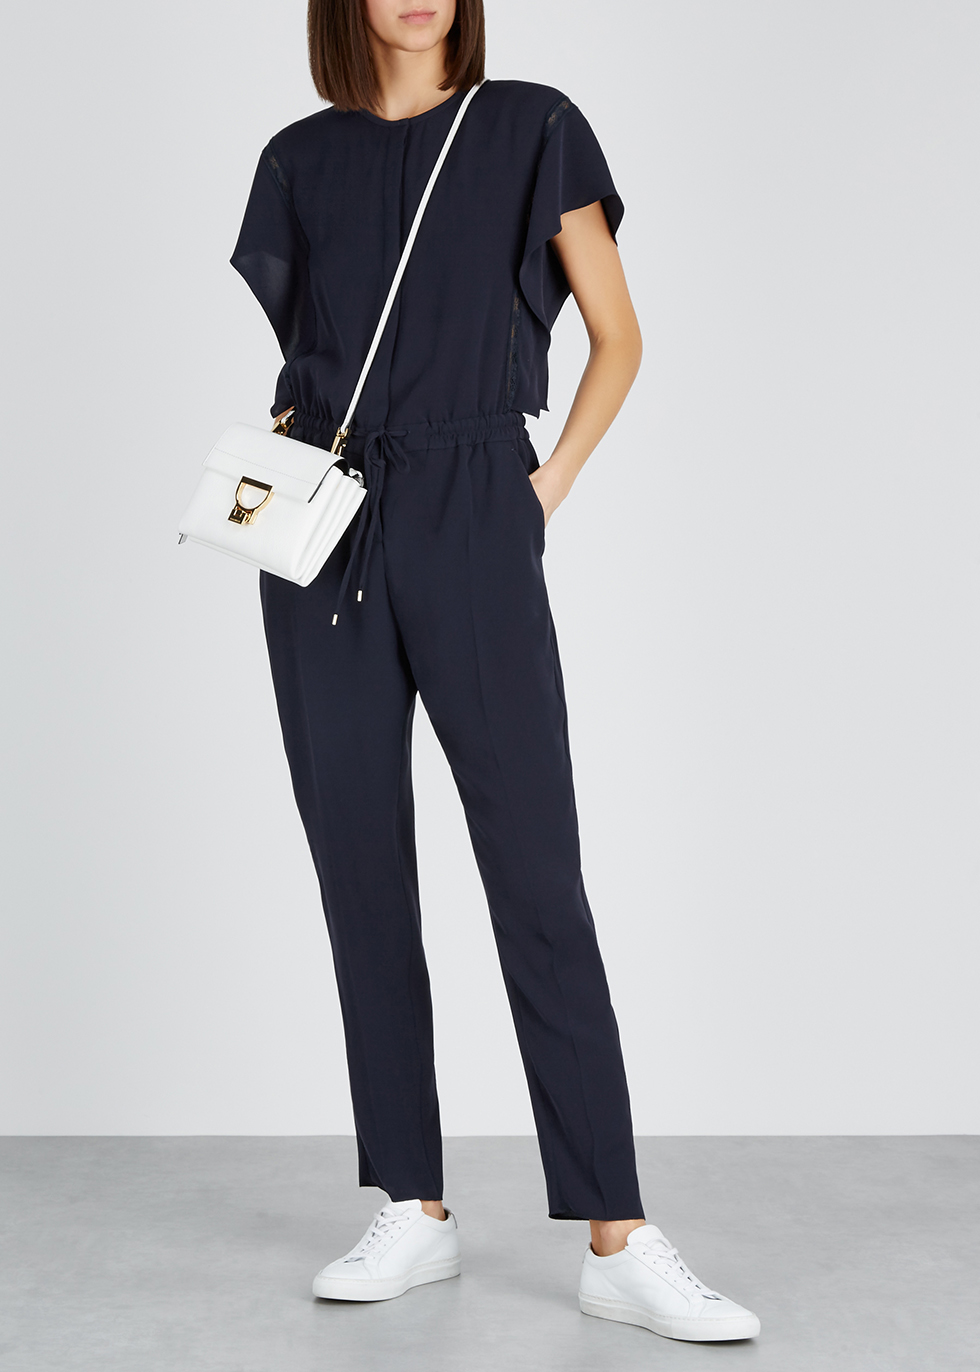 142599e0db14 Designer Jumpsuits and Luxury Playsuits - Harvey Nichols